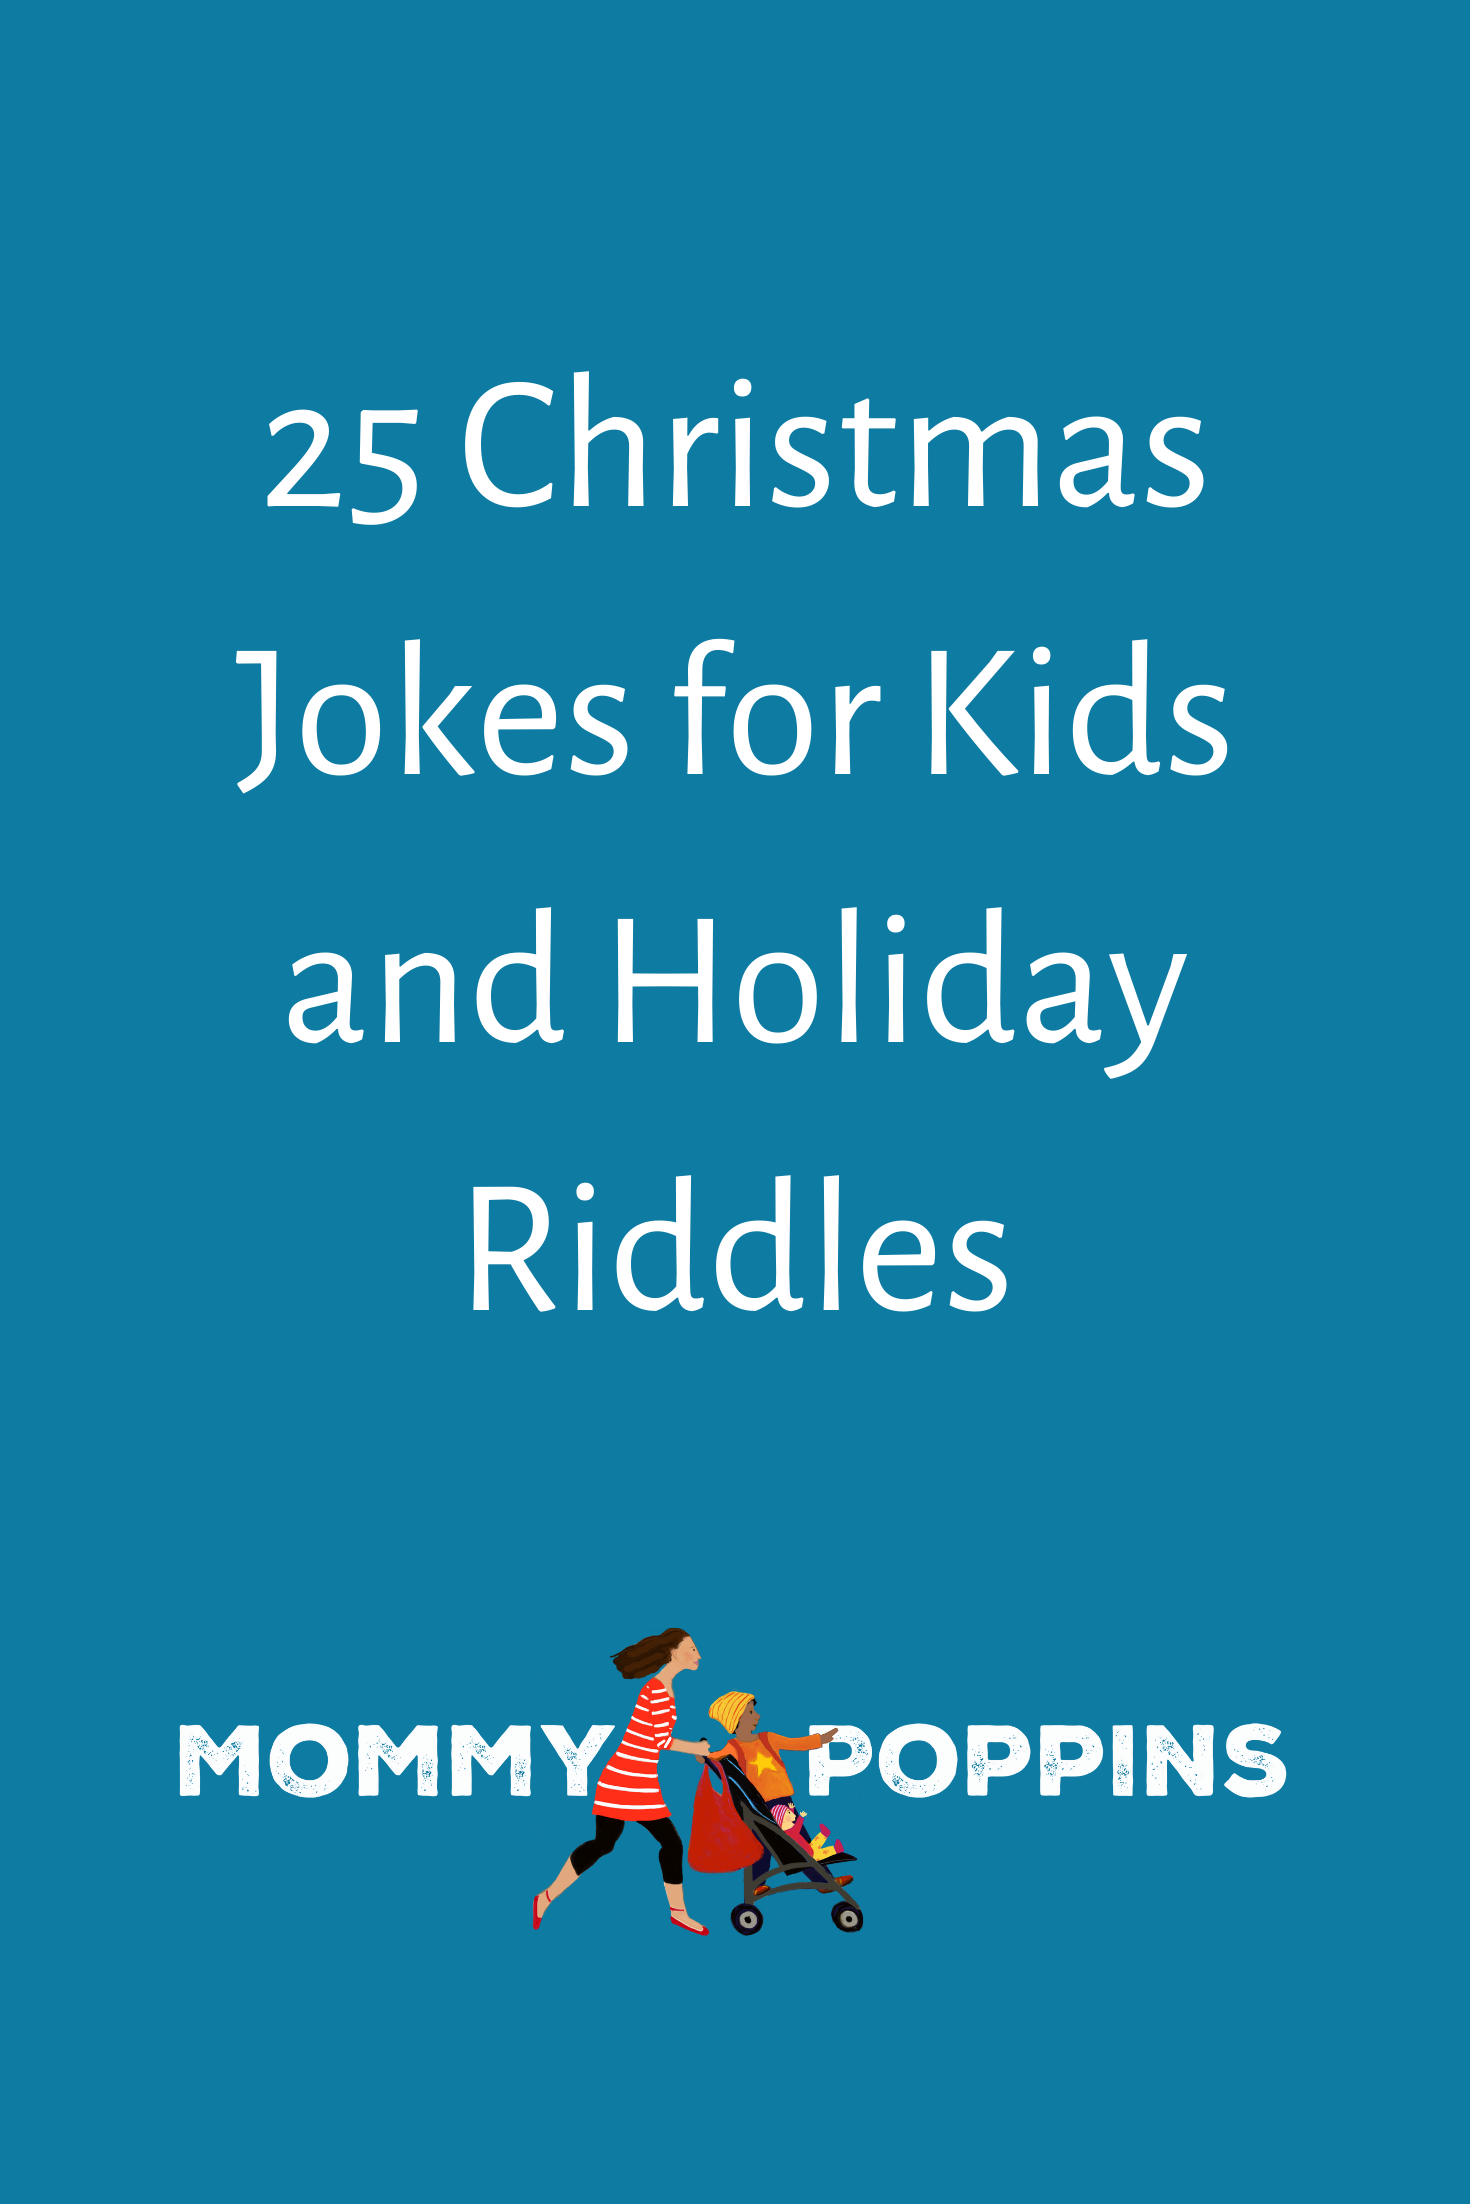 25 Christmas Jokes for Kids and Holiday Riddles